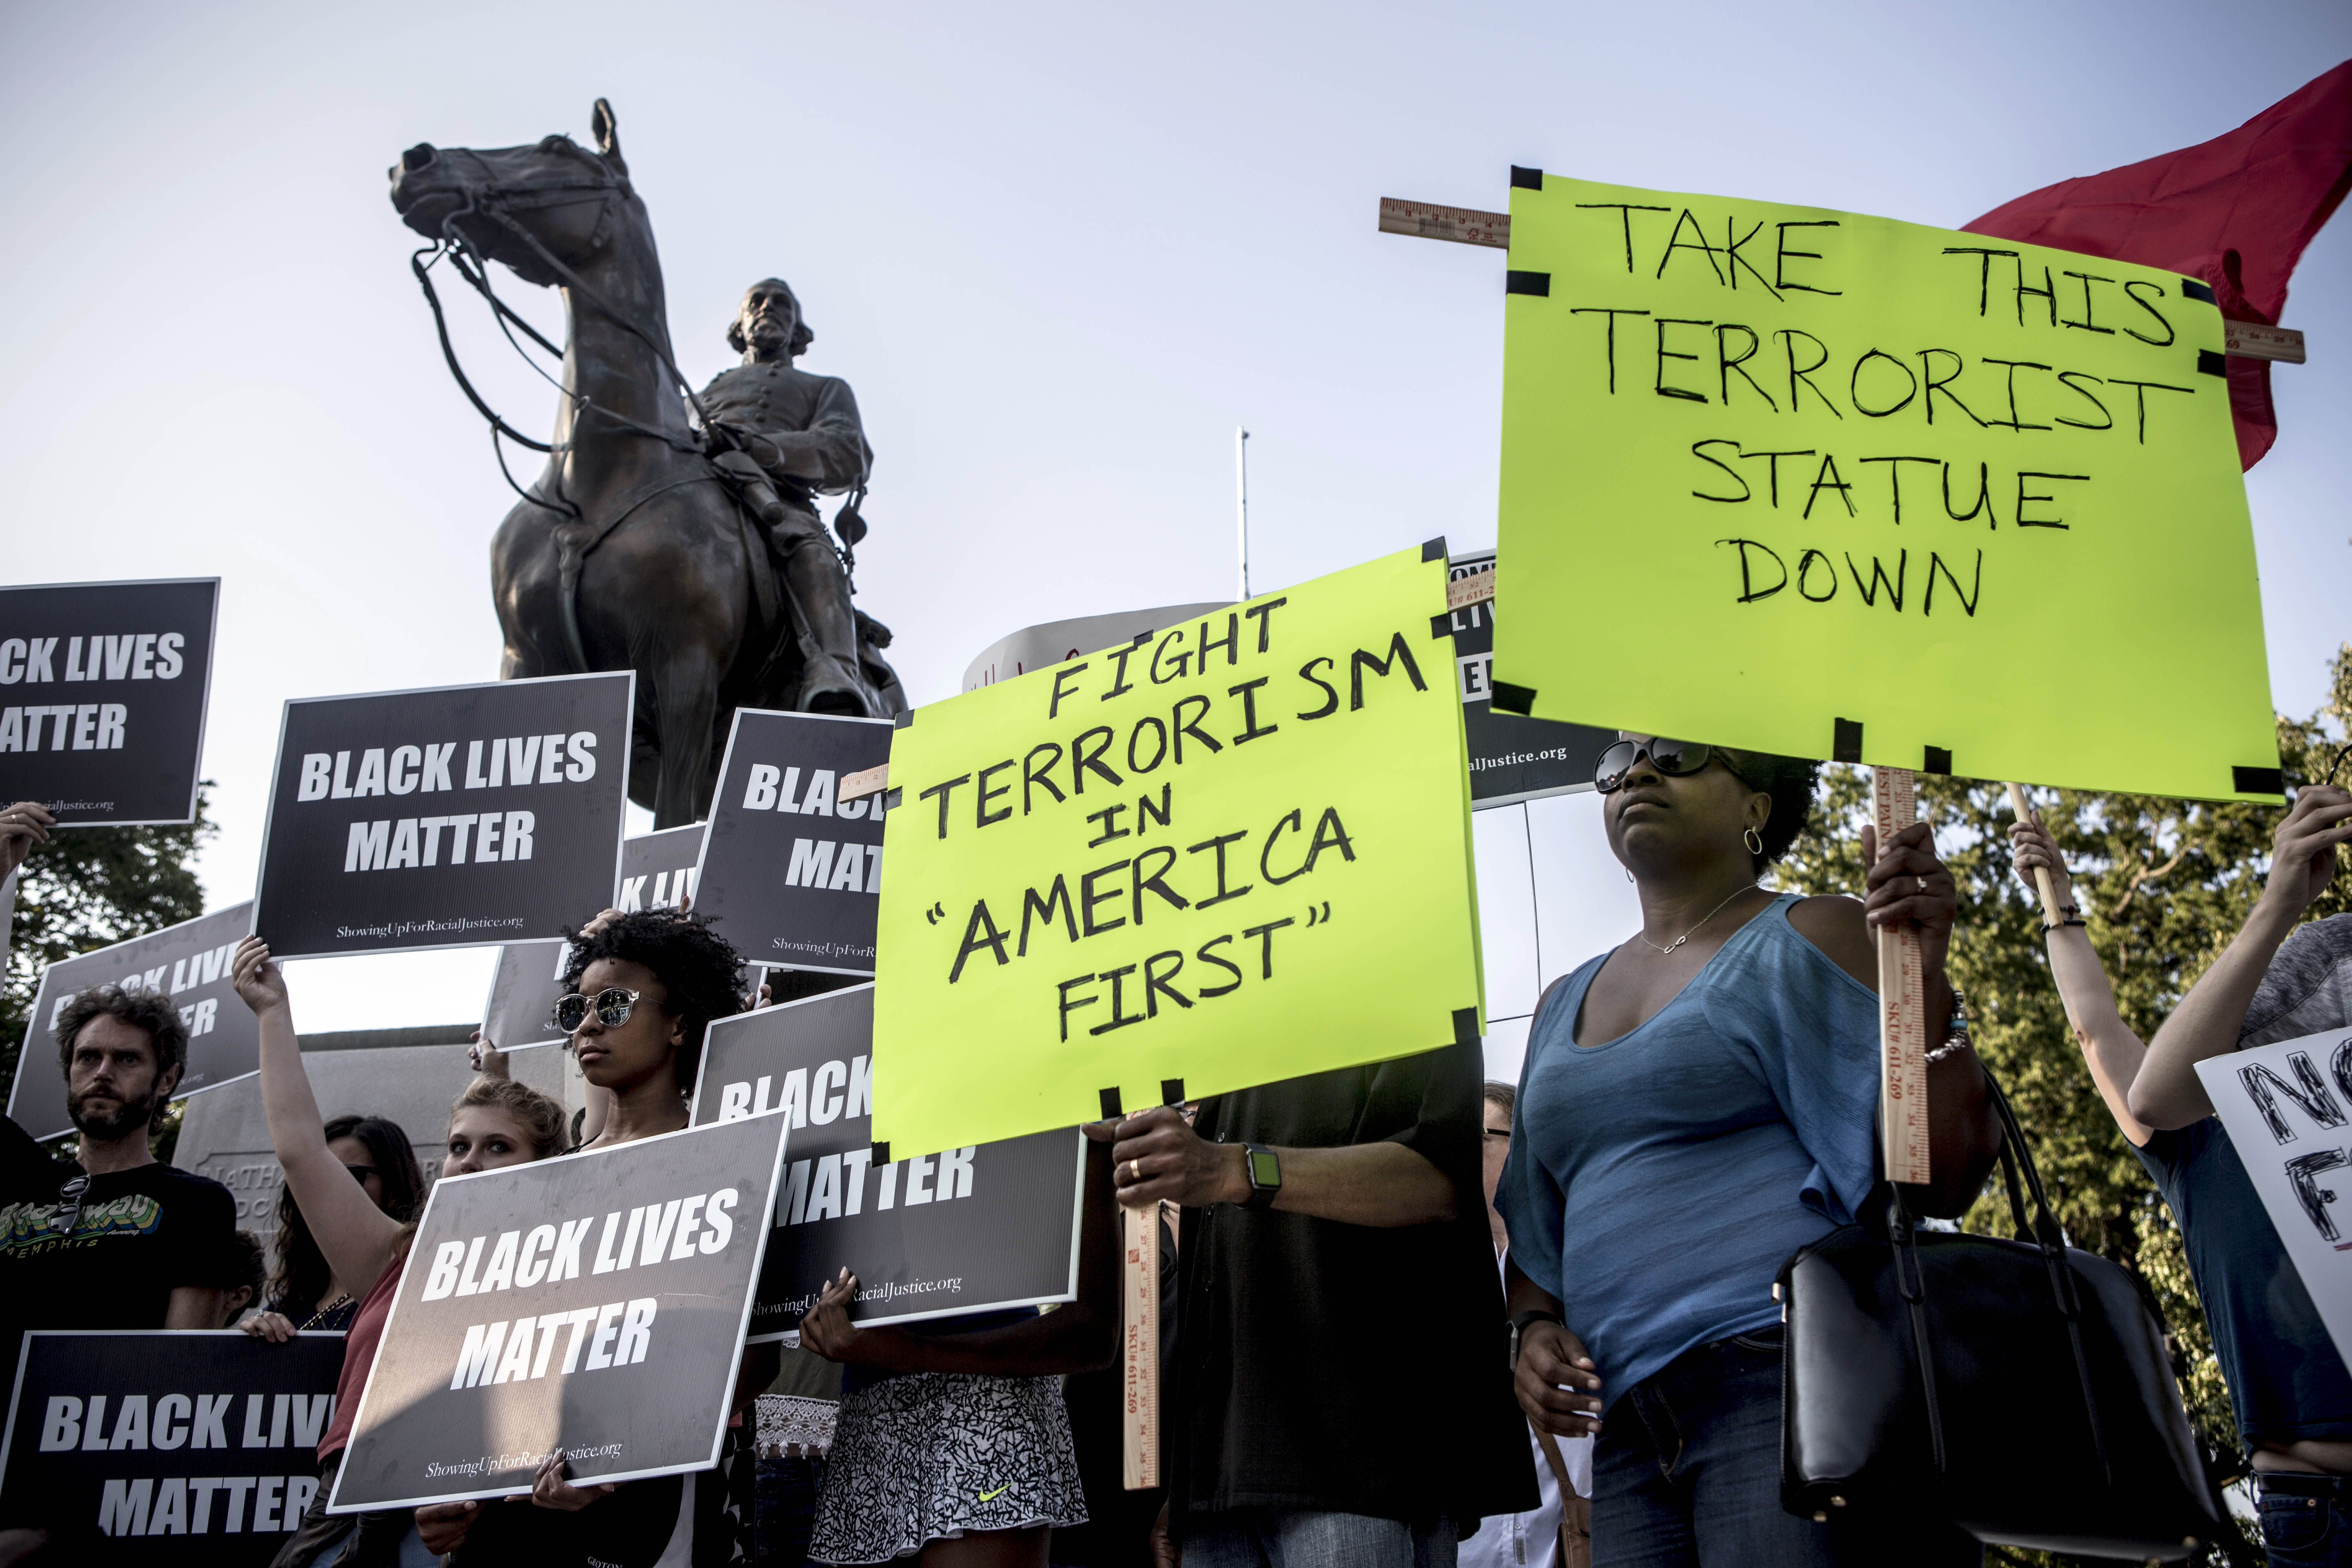 August 12, 2017 - Memphis, TN:  Community members join the #takeemdown901 movement in Memphis and protest at Health Sciences Park. The park was formerly named Forrest Park, after Nathan Bedford Forrest, the Confederate general and grand wizard of the Ku Klux Klan, who has a monument in his honor there. The statue also sits on top of Forrest and his wife's bodies, which were exhumed from their original resting places at the Elmwood Cemetery, when the statue went up in 1905.